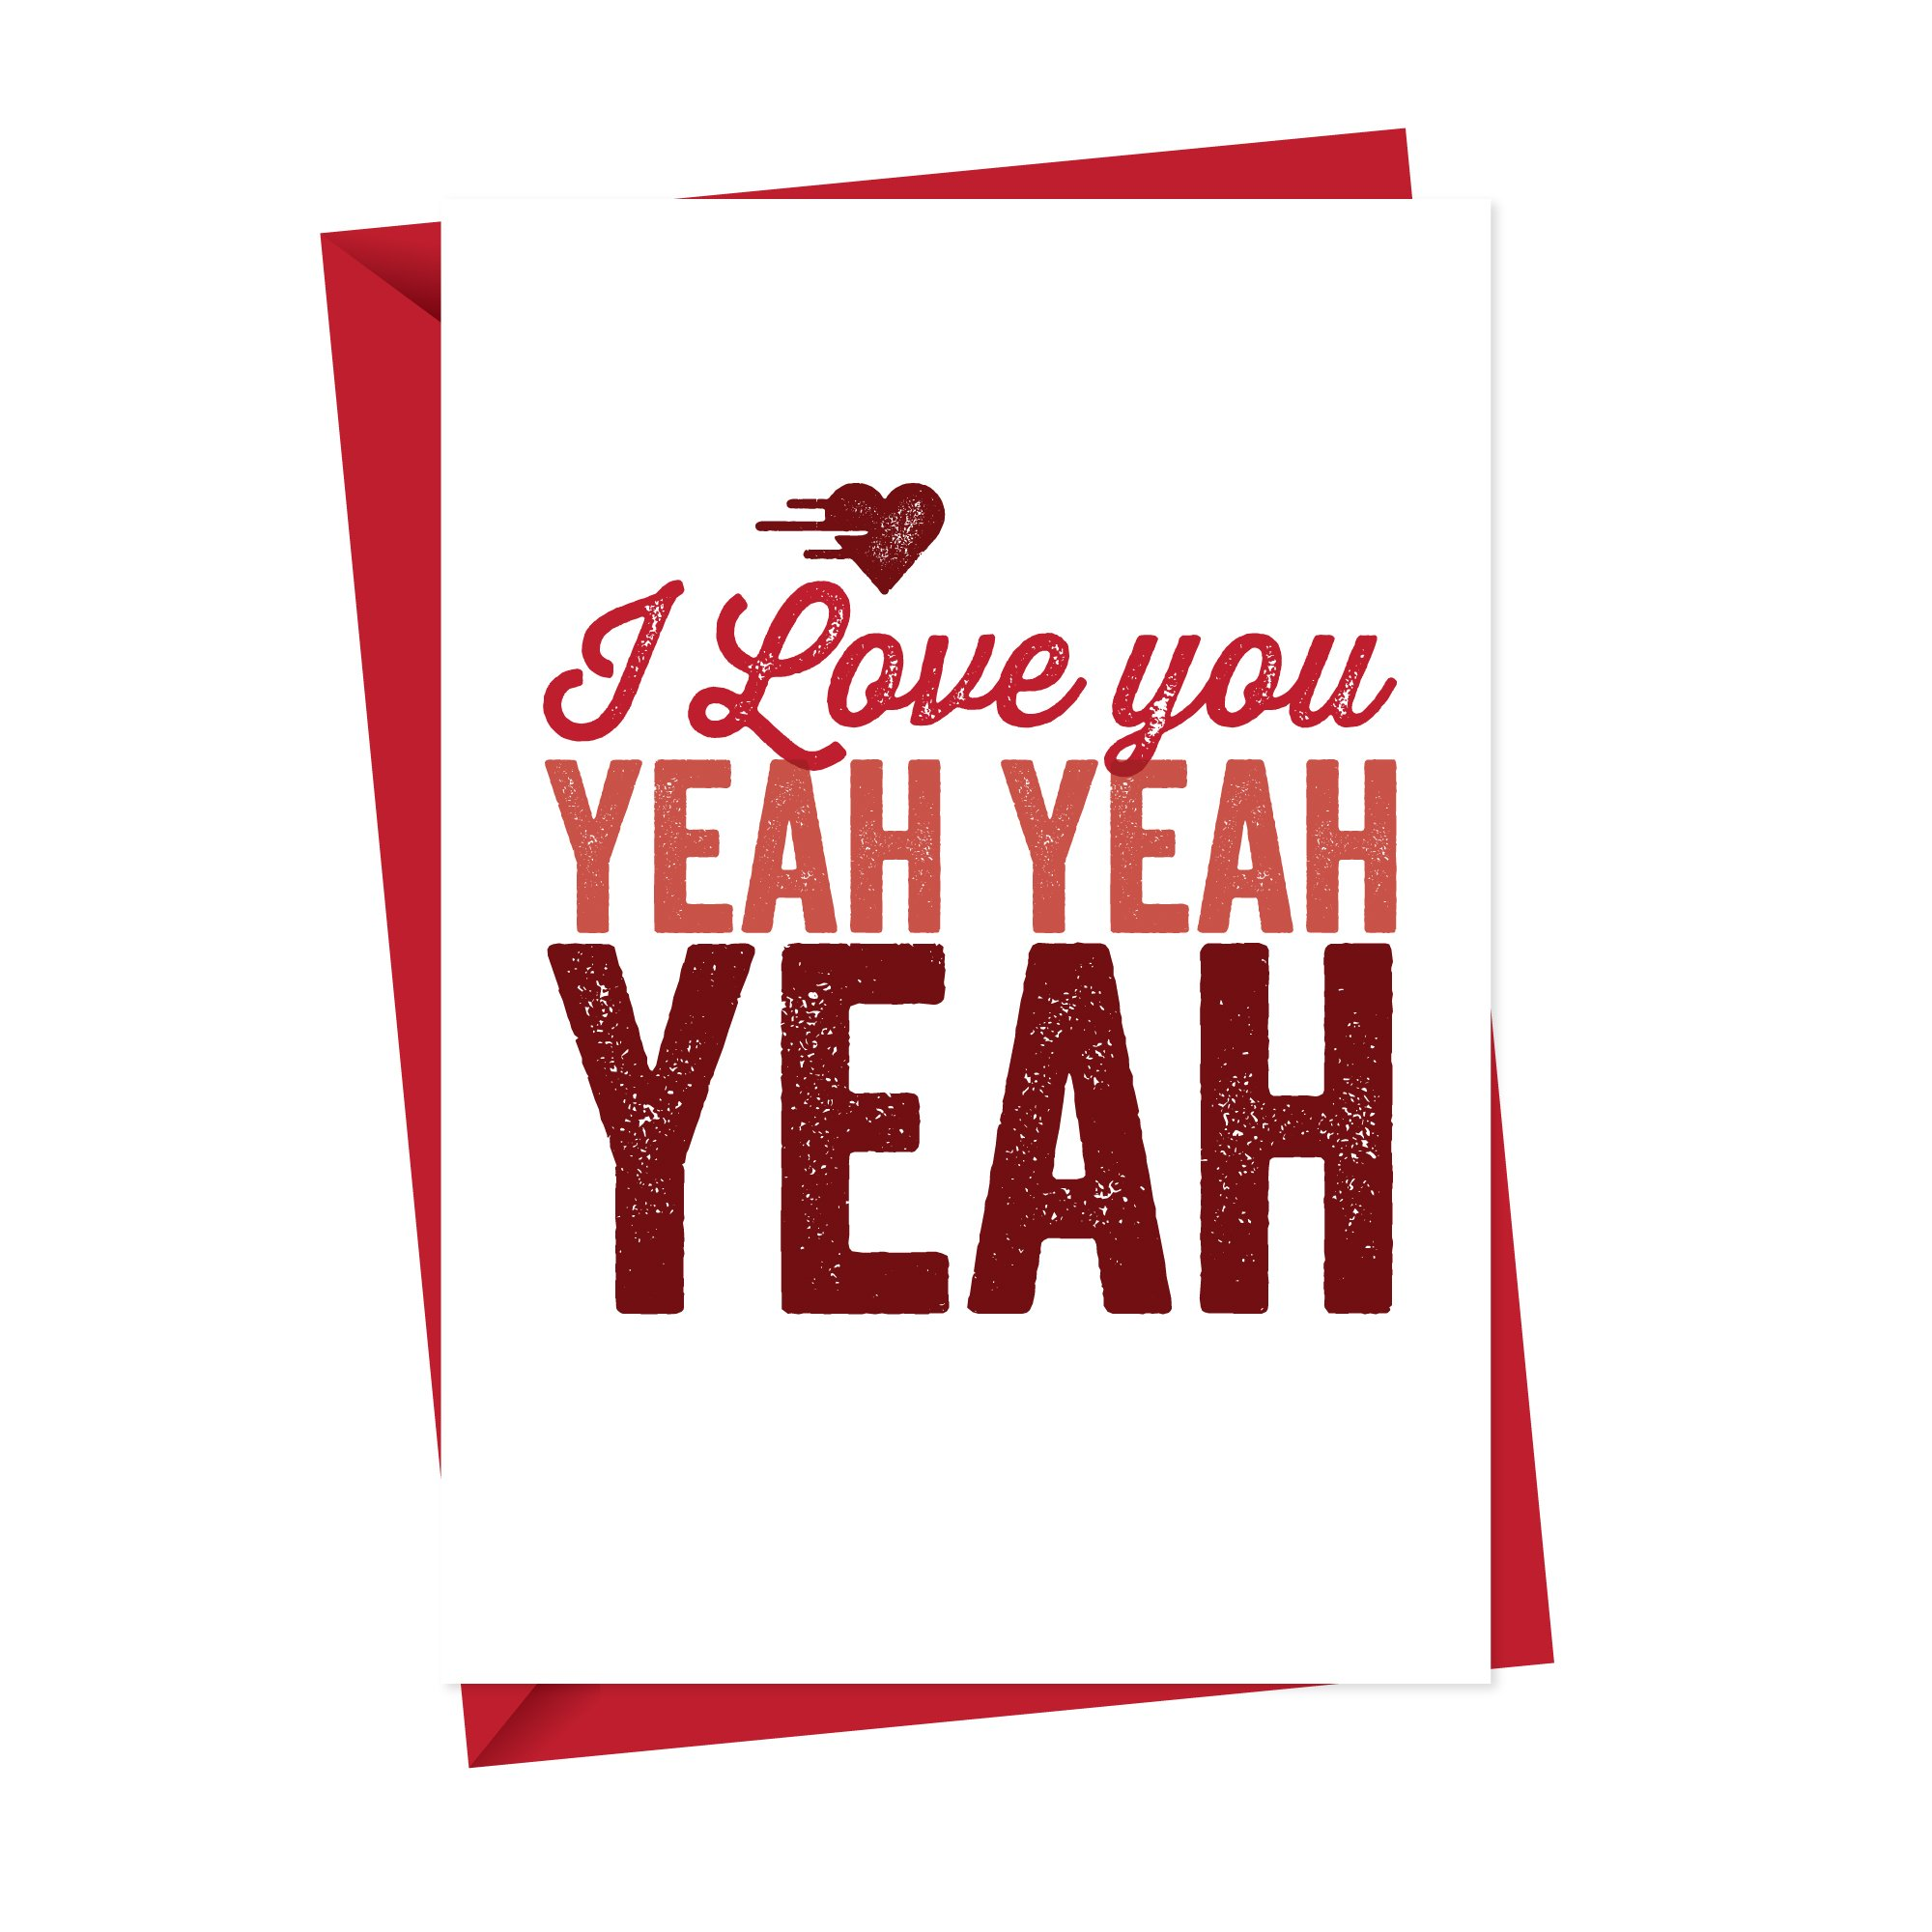 I love you yeah yeah yeah card